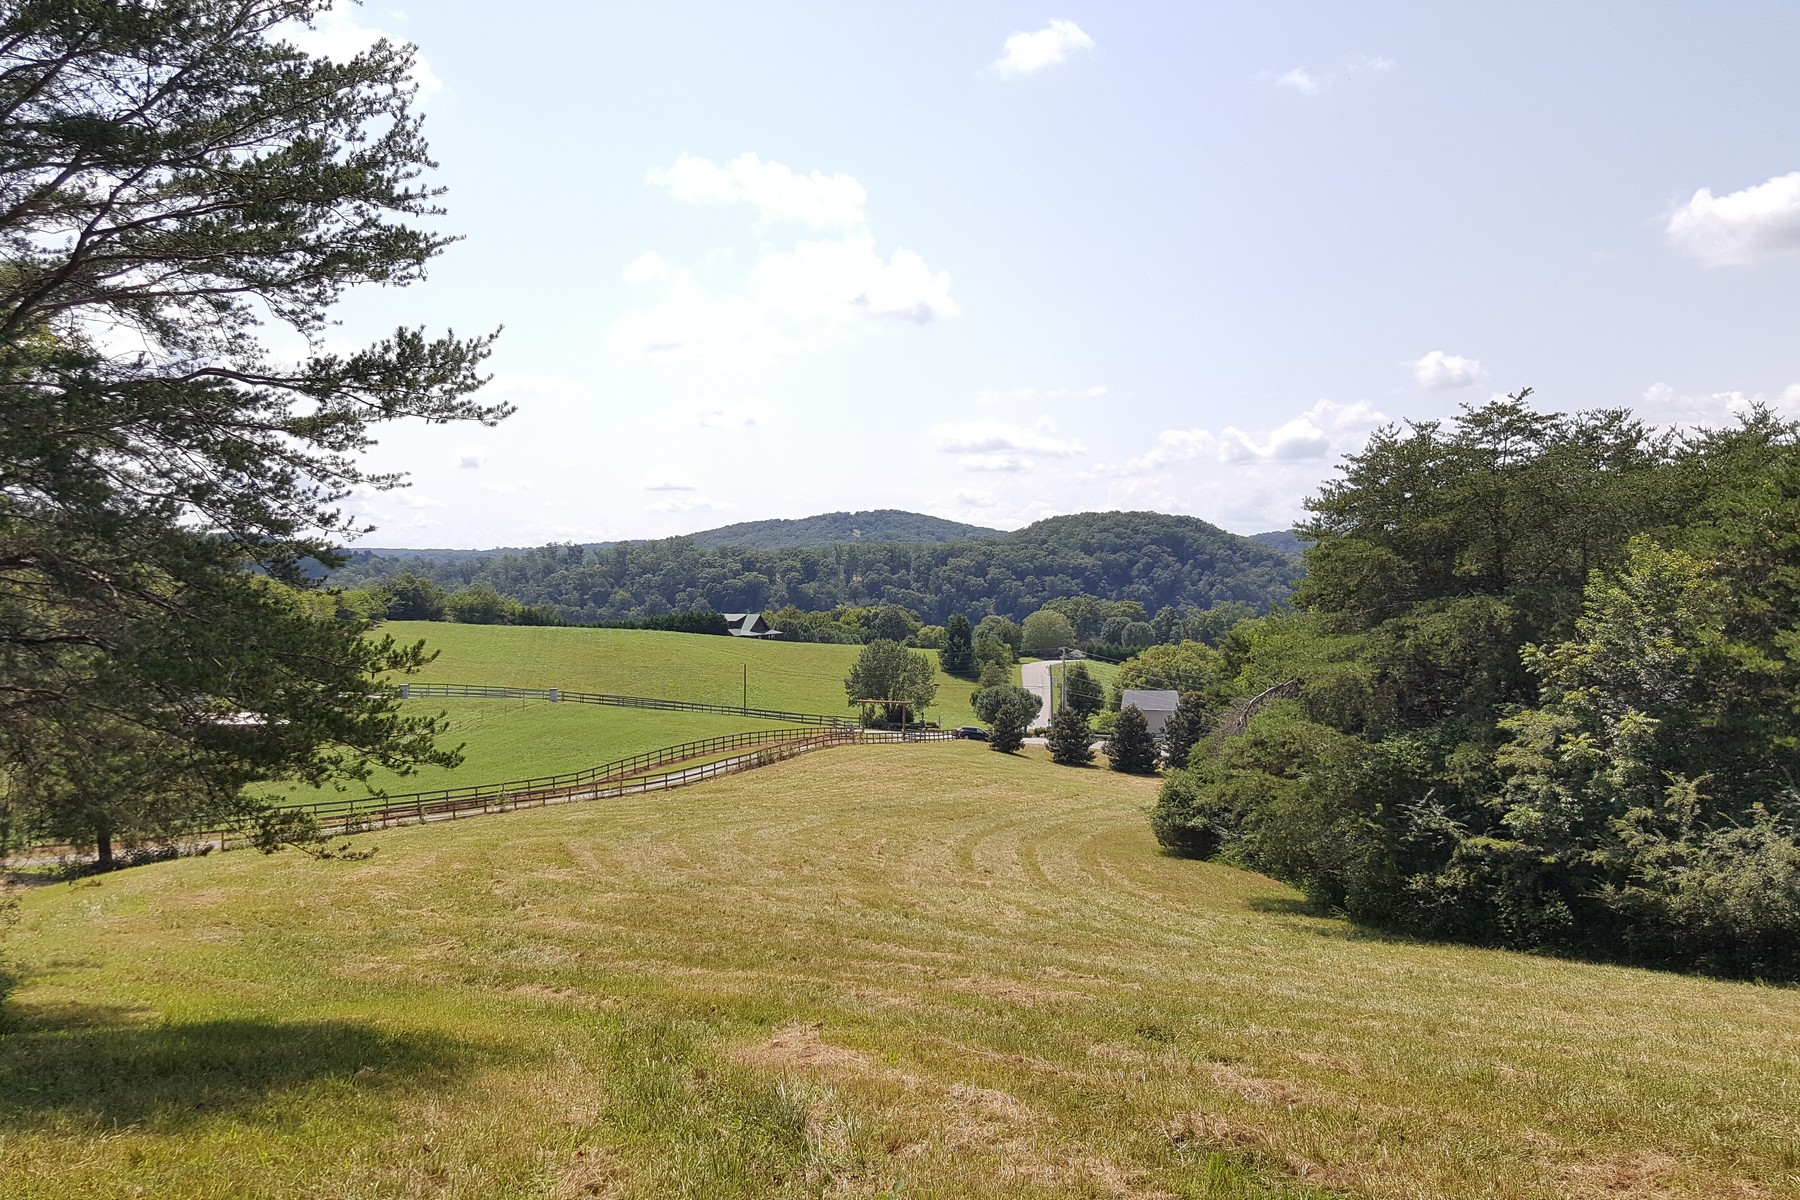 أراضي للـ Sale في Scenic Views From 23.7 Acres Little Dogwood Road, Kingston, Tennessee 37763 United States